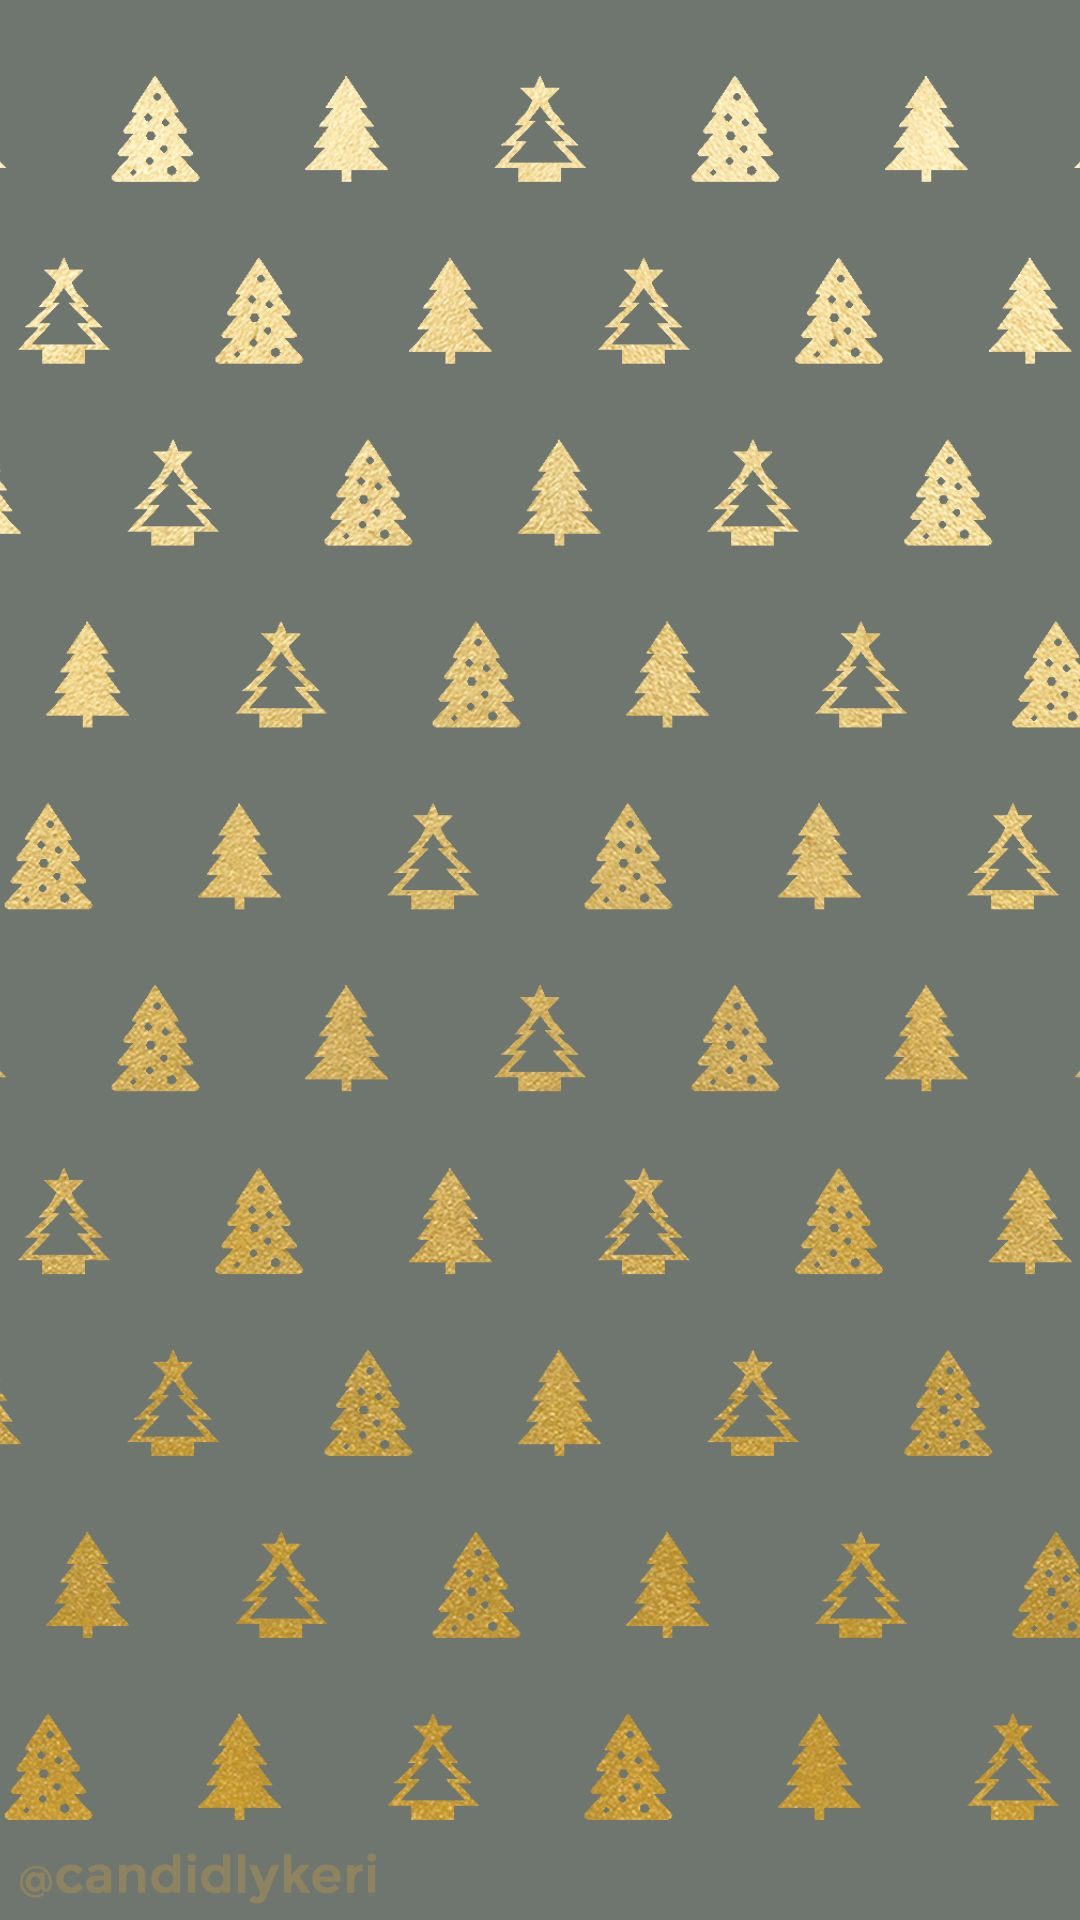 Wallpaper download blog - Christmas Tree Gold Foil Green Background Wallpaper You Can Download For Free On The Blog